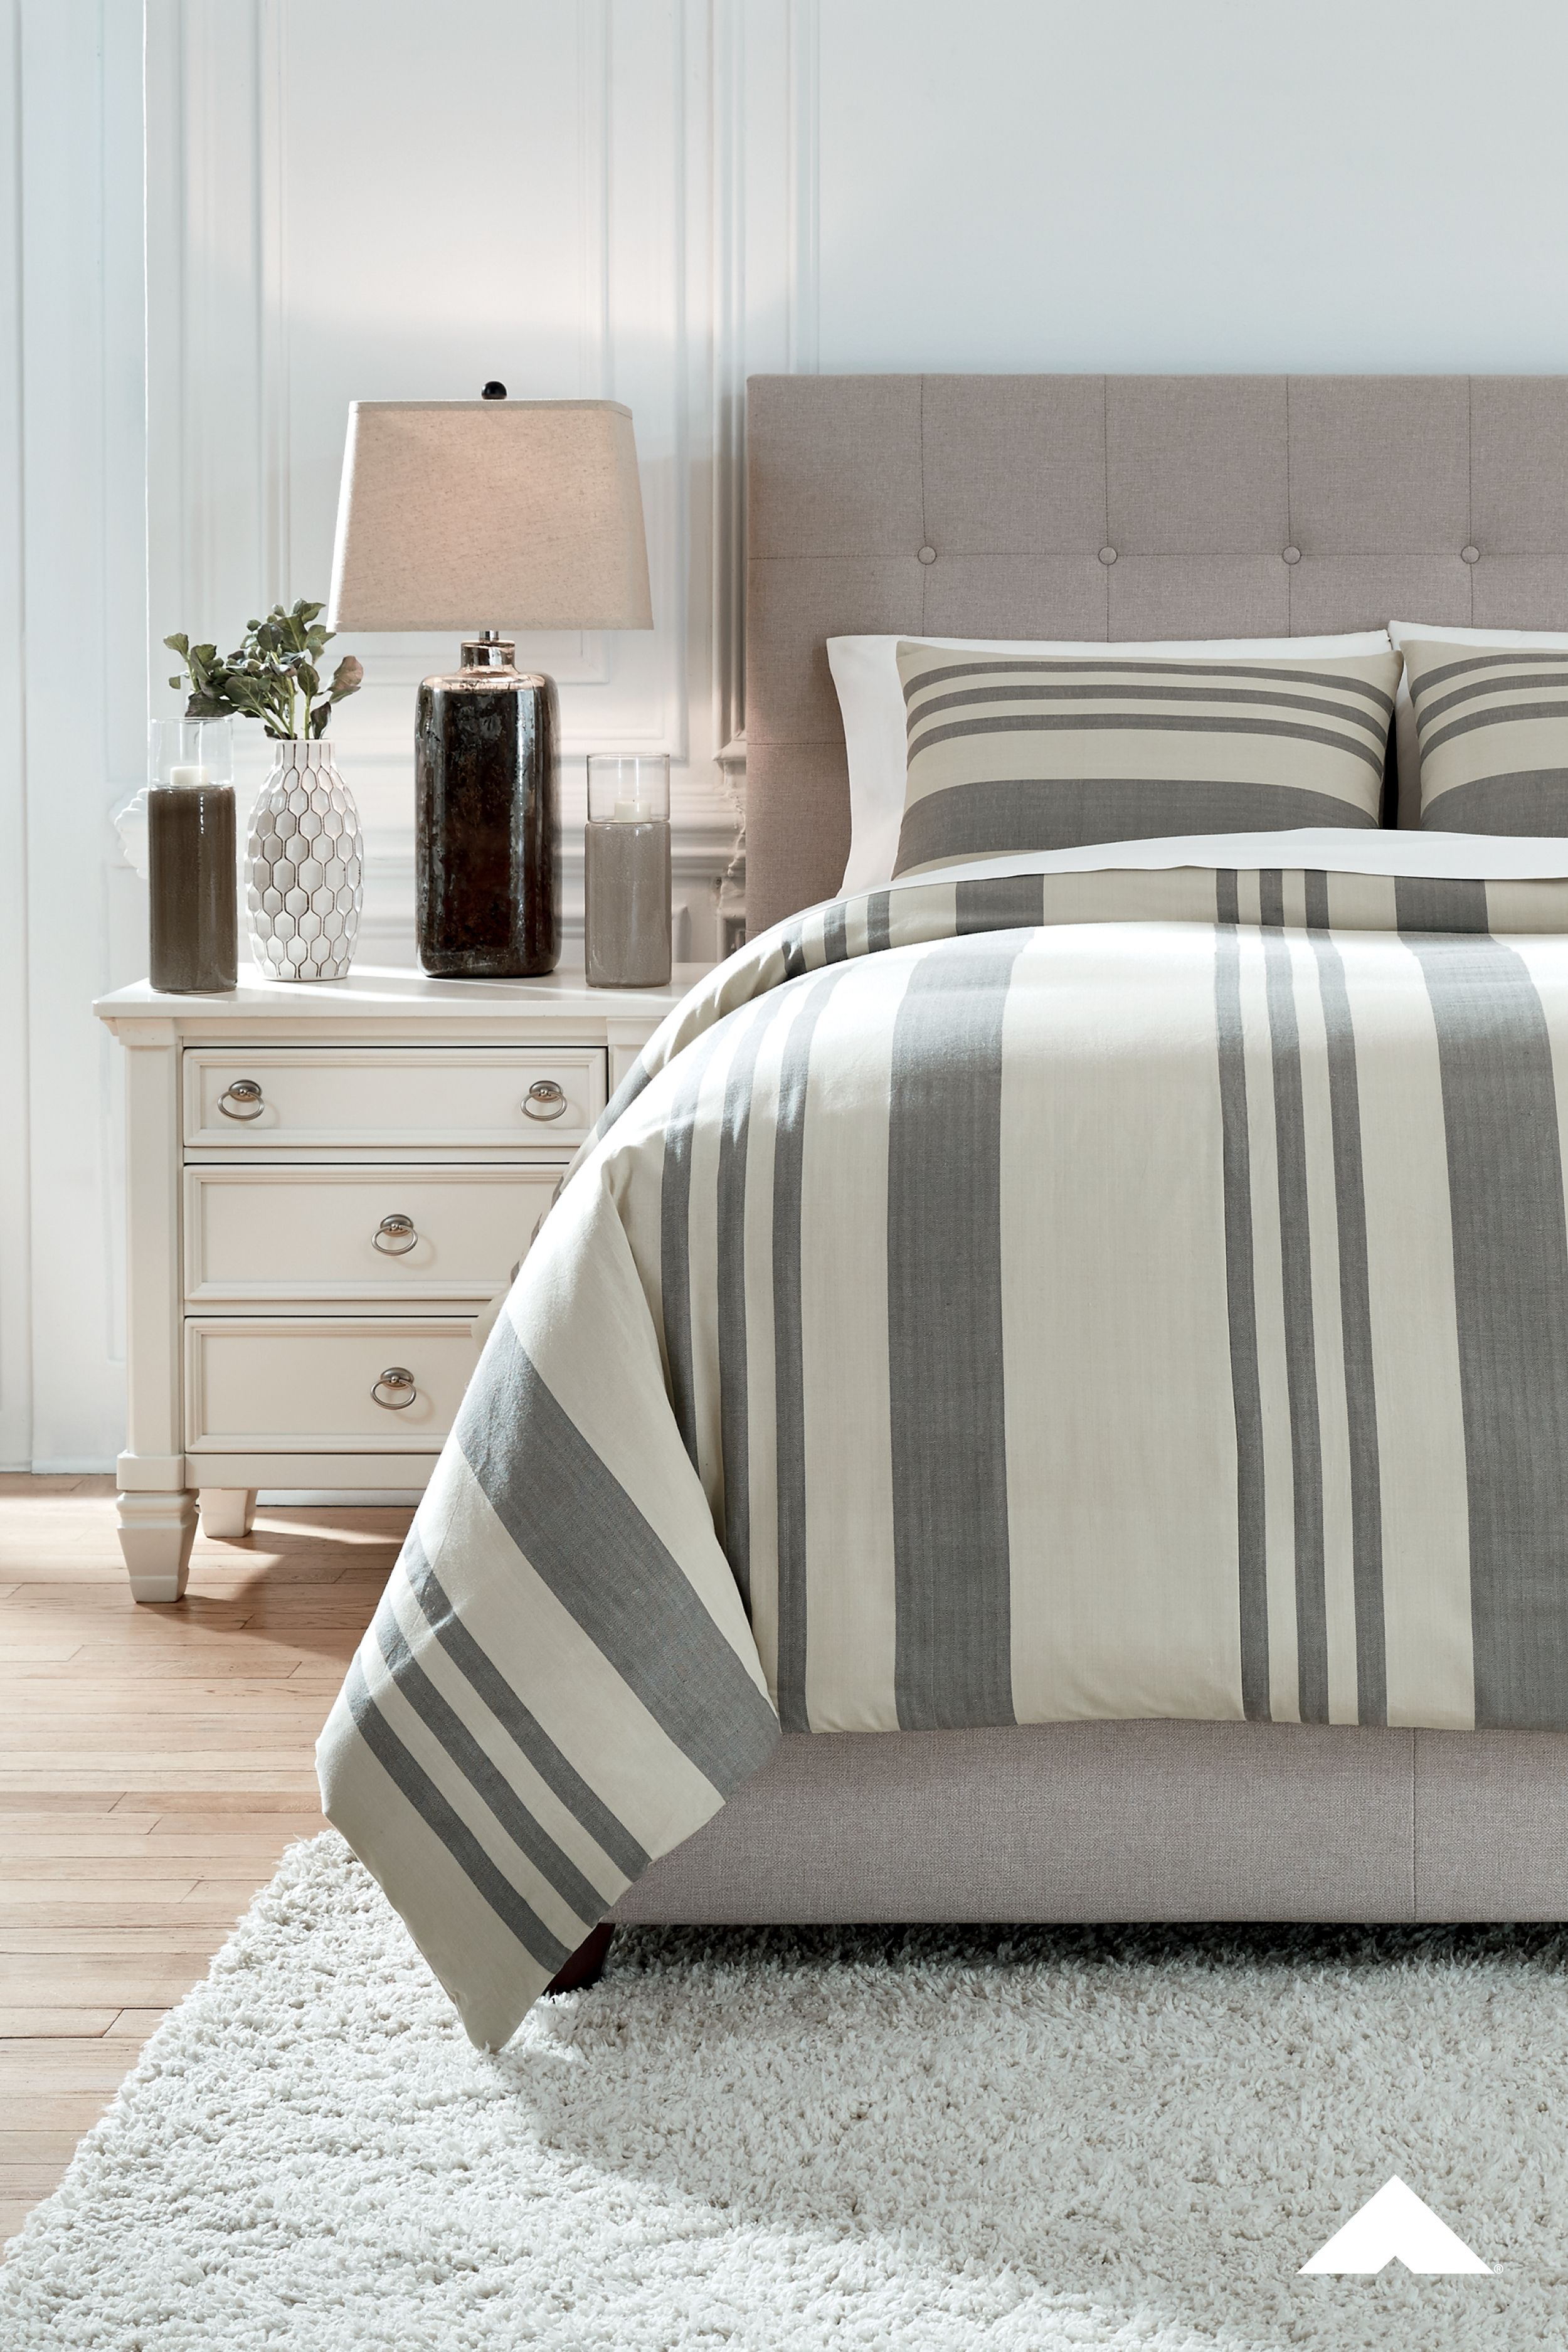 Schukei Natural Charcoal Queen Comforter Set By Ashley Furniture Yarn Dyed To Perfection The Stripes On The Sc Comforter Sets King Comforter Sets Comforters